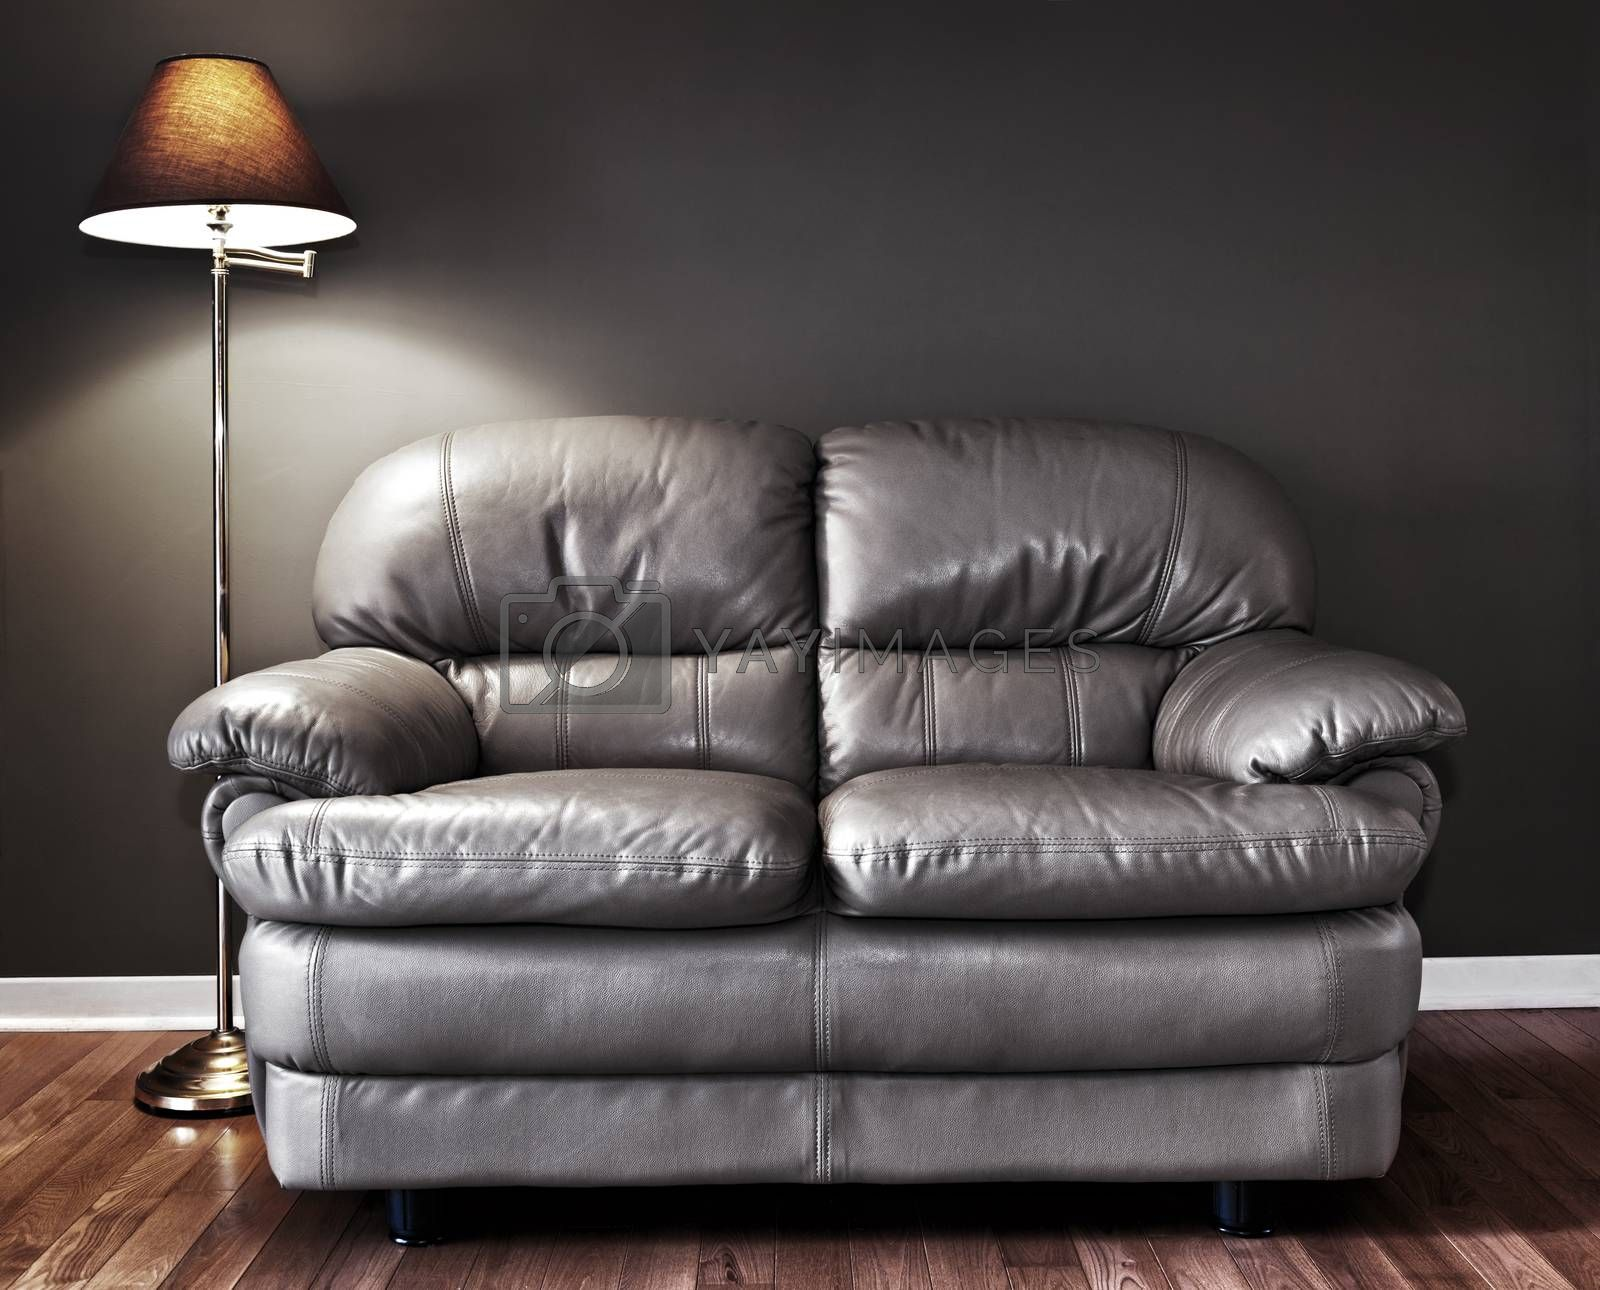 Leather love seat and floor lamp against dark wall